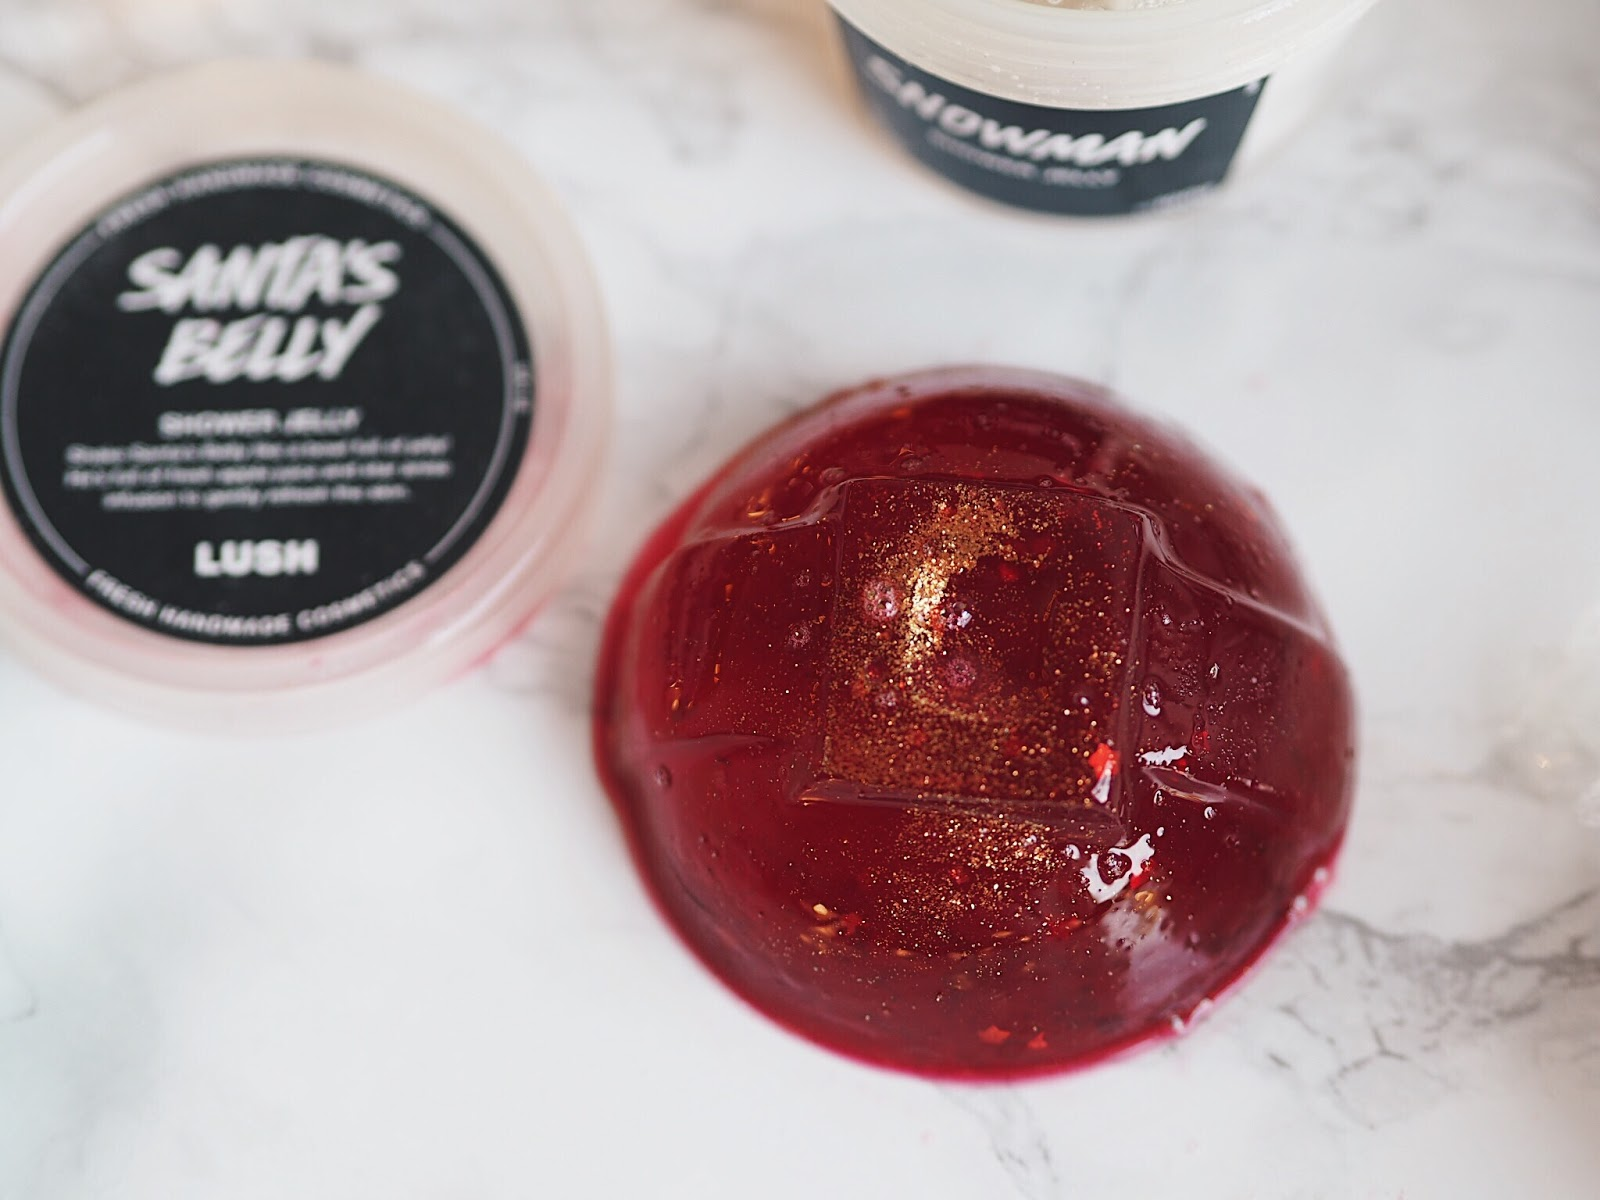 lush christmas 2017 santas belly shower jelly